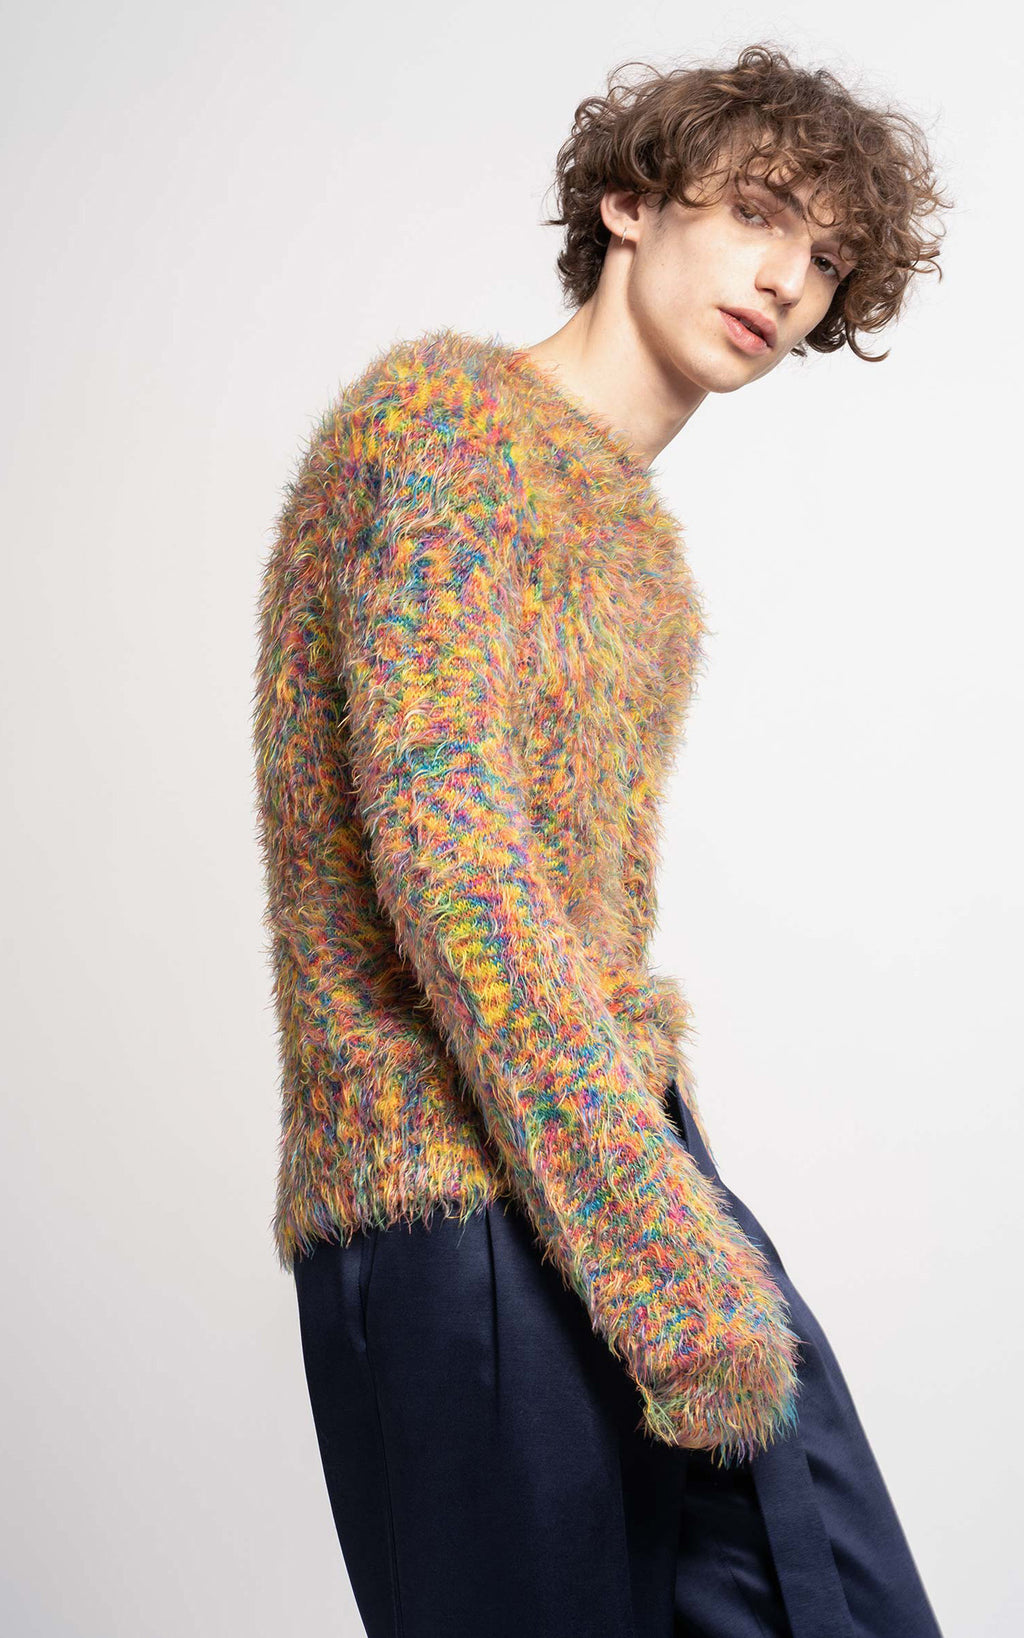 Roman Multicolor Crewneck Sweater